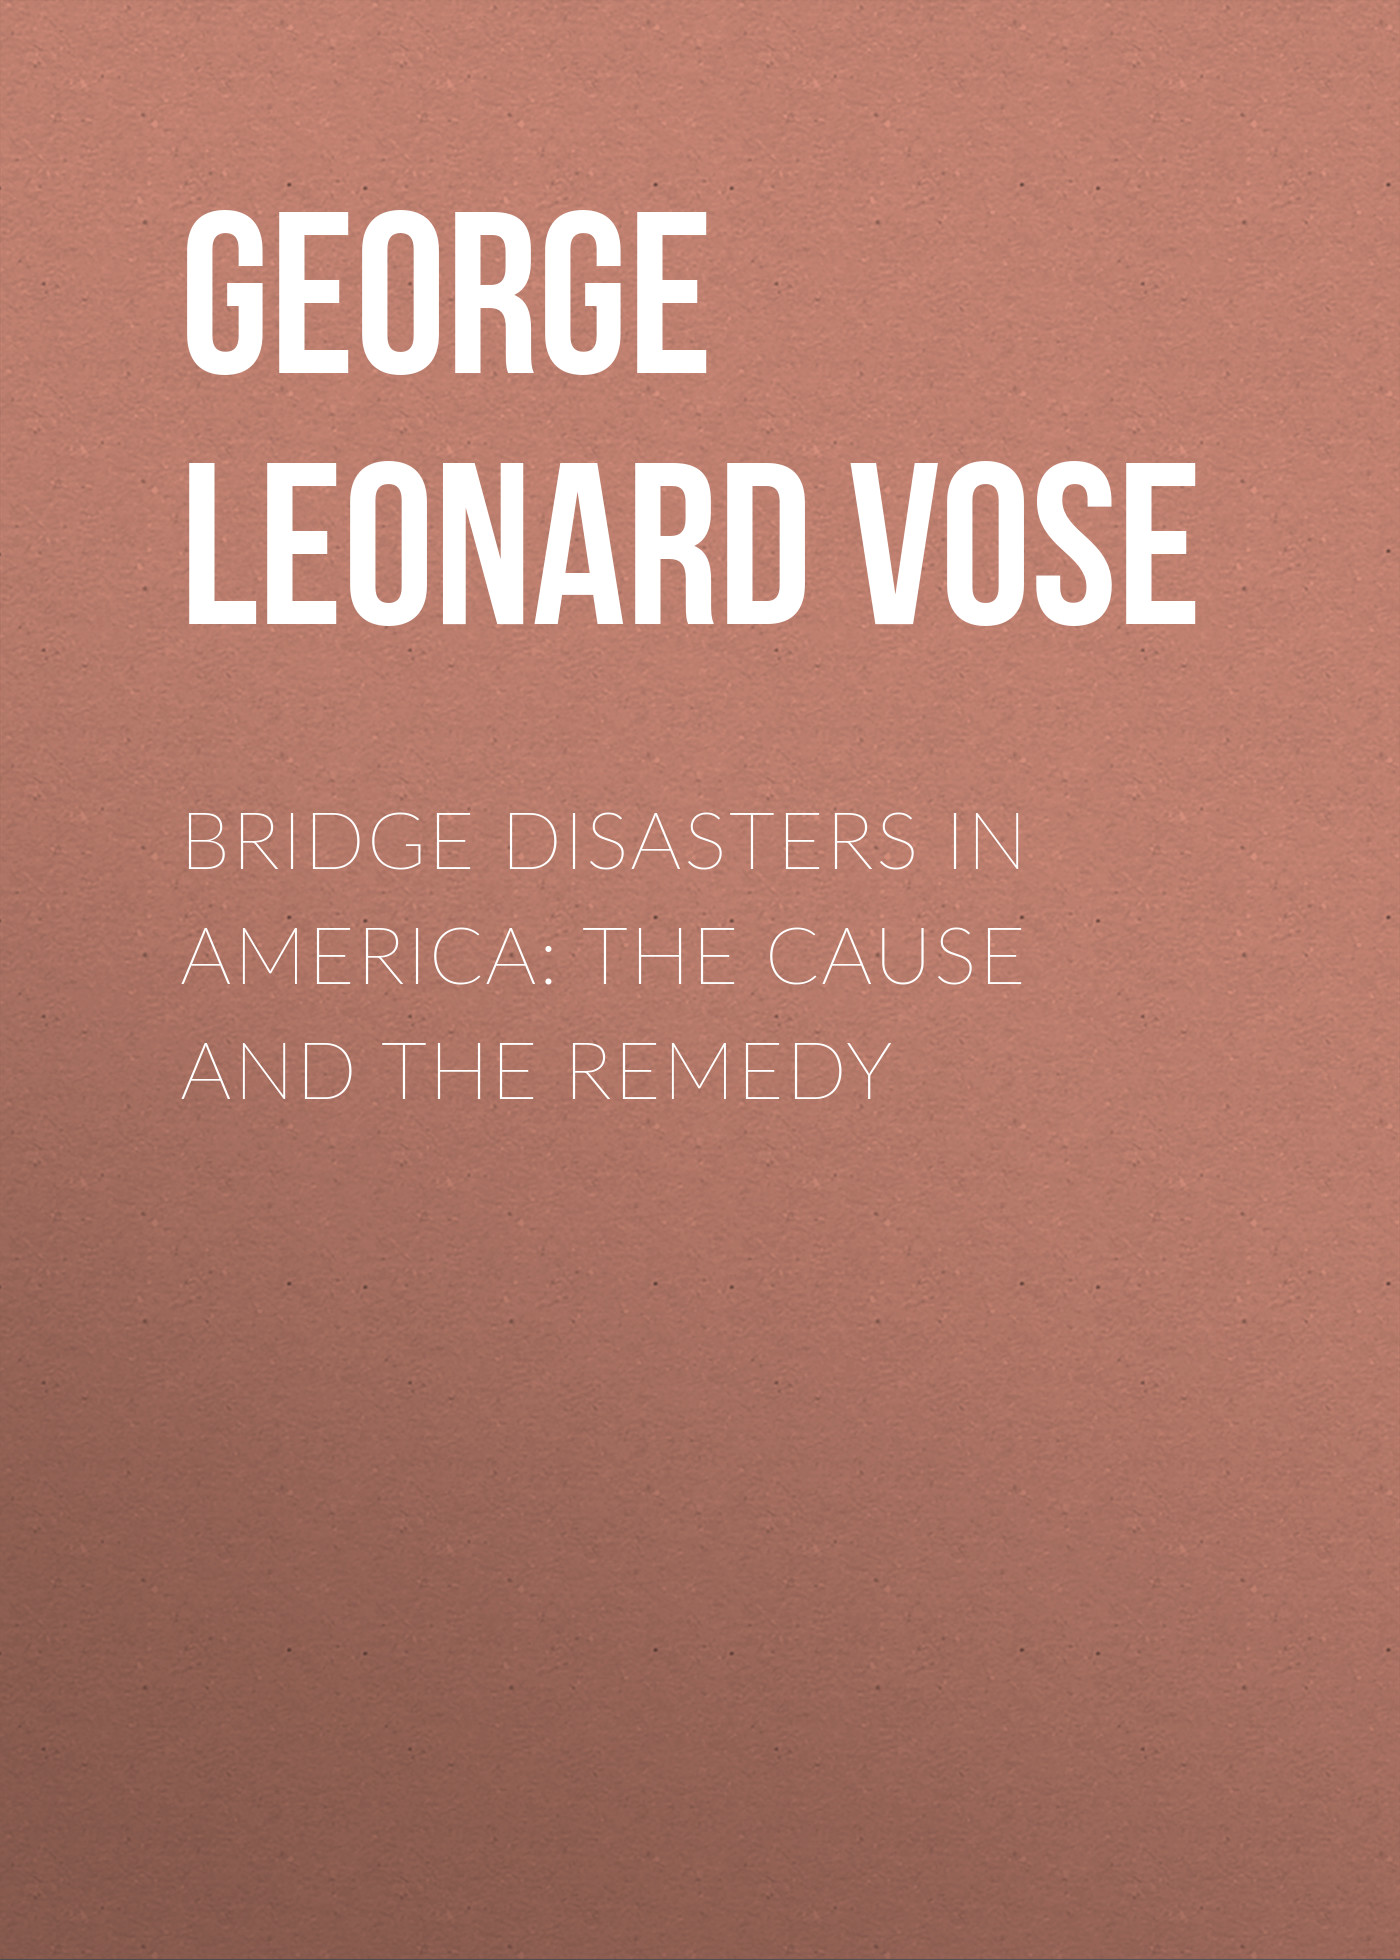 George Leonard Vose Bridge Disasters in America: The Cause and the Remedy george leonard vose bridge disasters in america the cause and the remedy